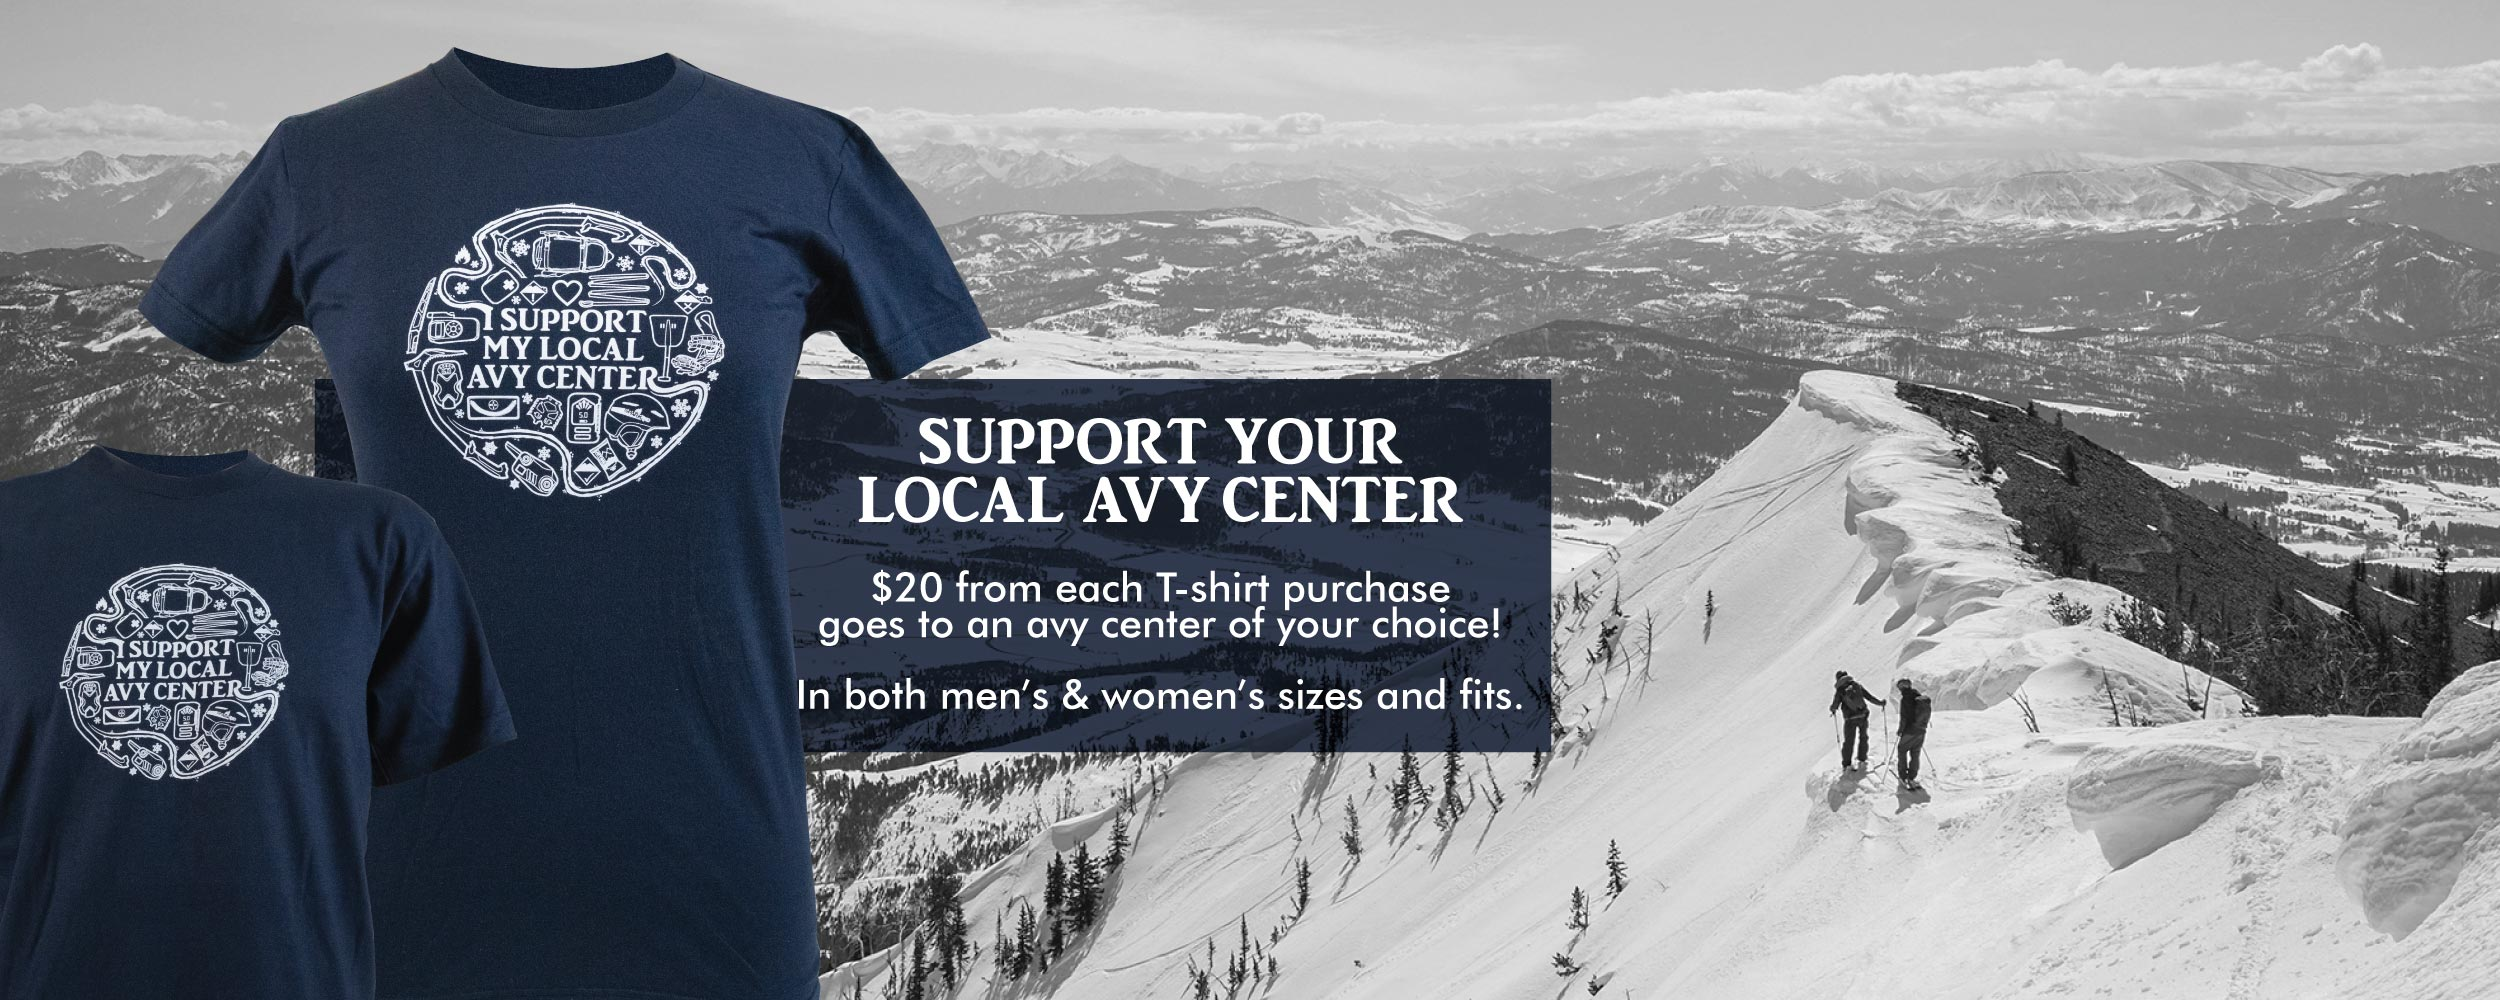 Avalanche Center support slider image